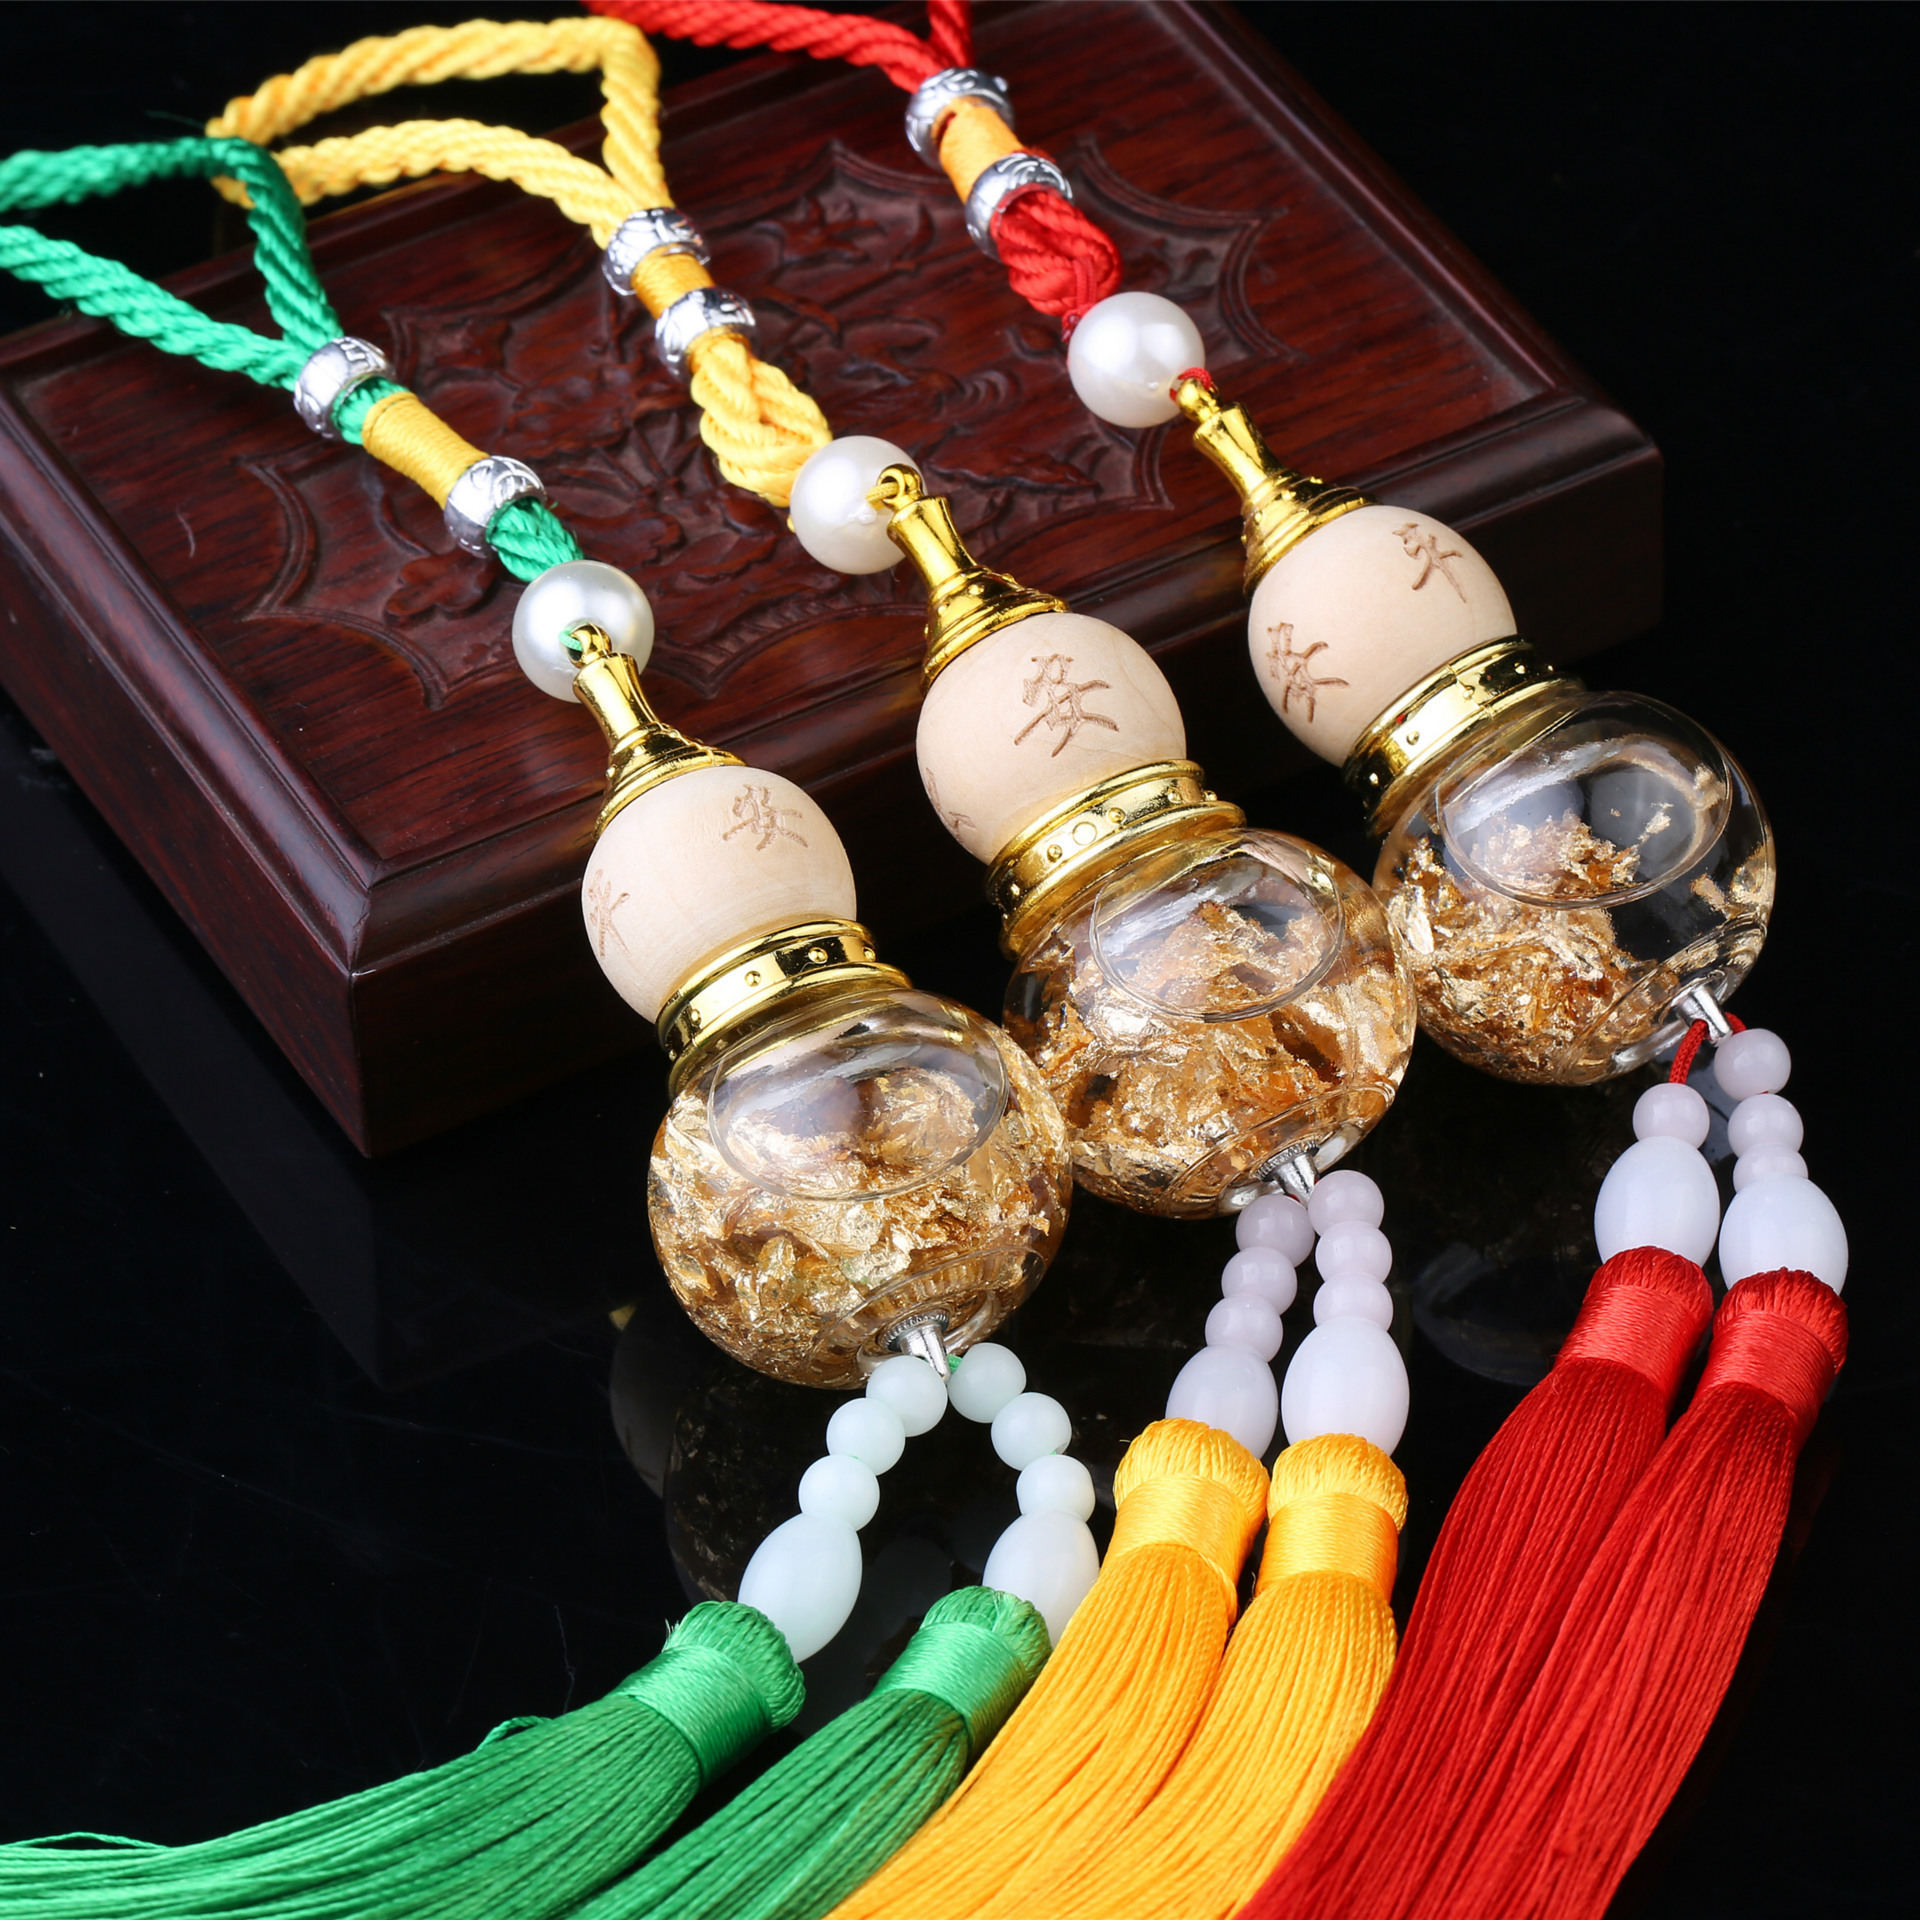 CHEYIFANG Car gourd pendant Gold foil bottom double-bearded gourd pendant car interior accessories c